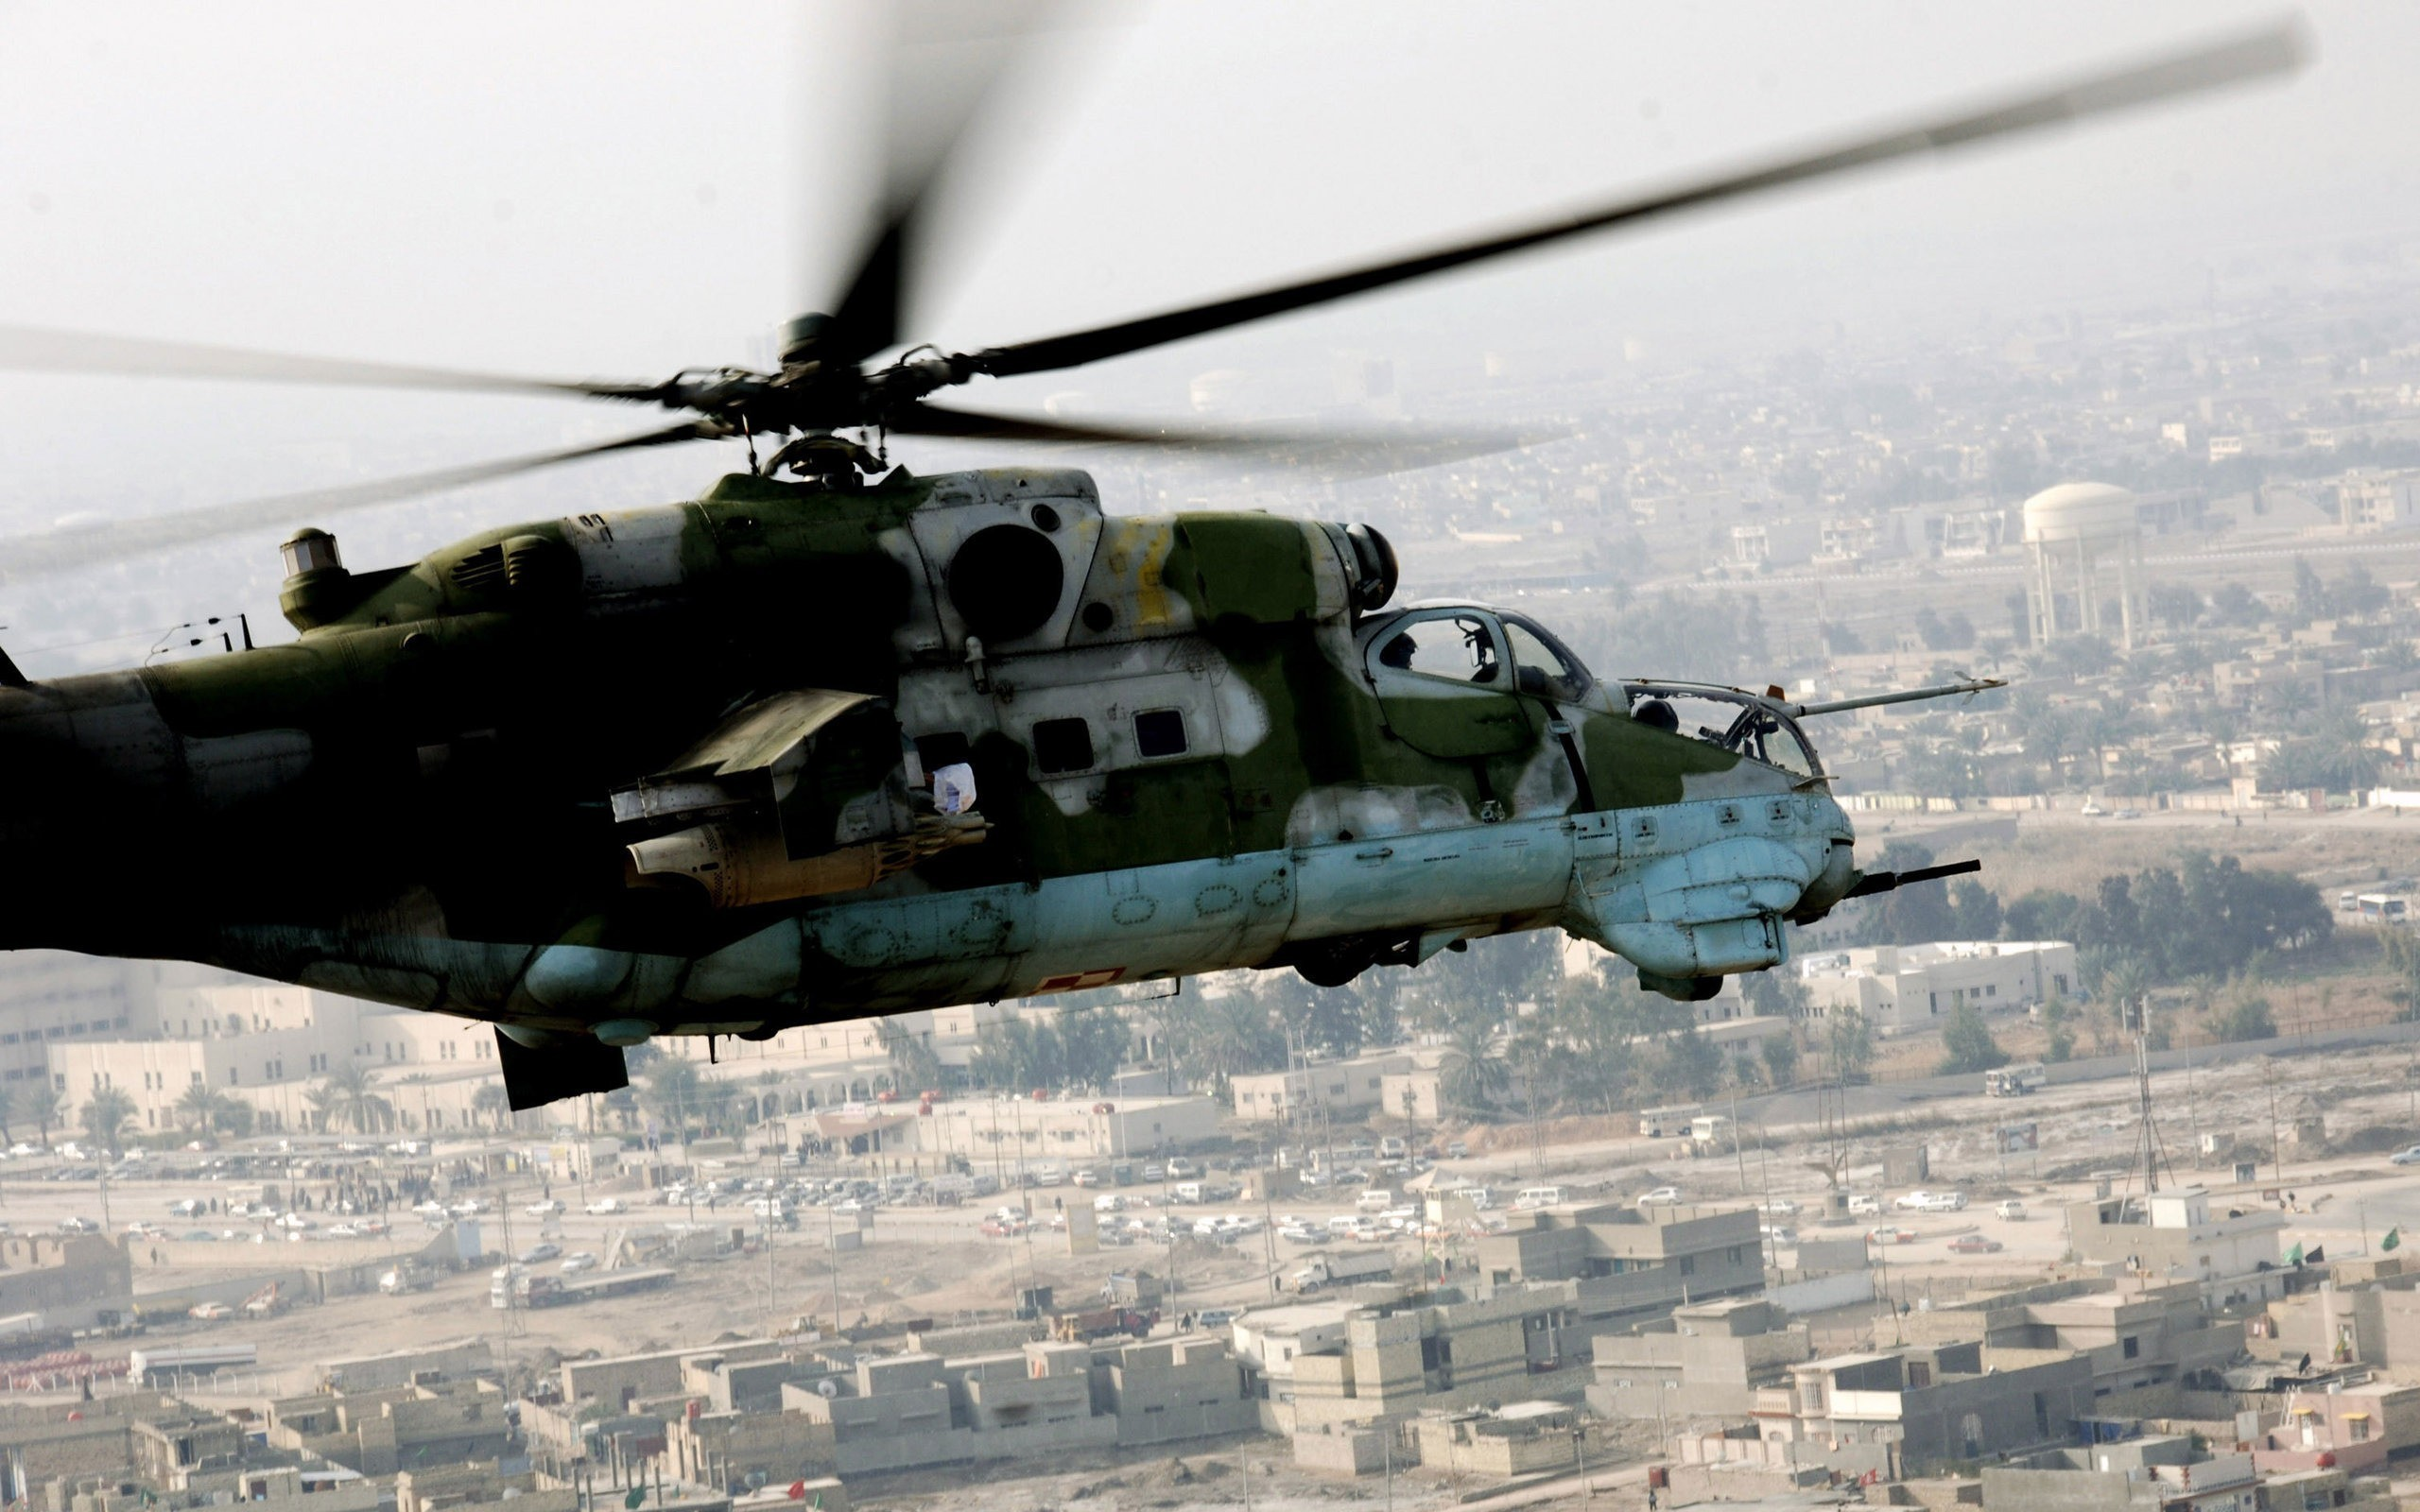 Aircraft Helicopters hind vehicles HD Wallpaper